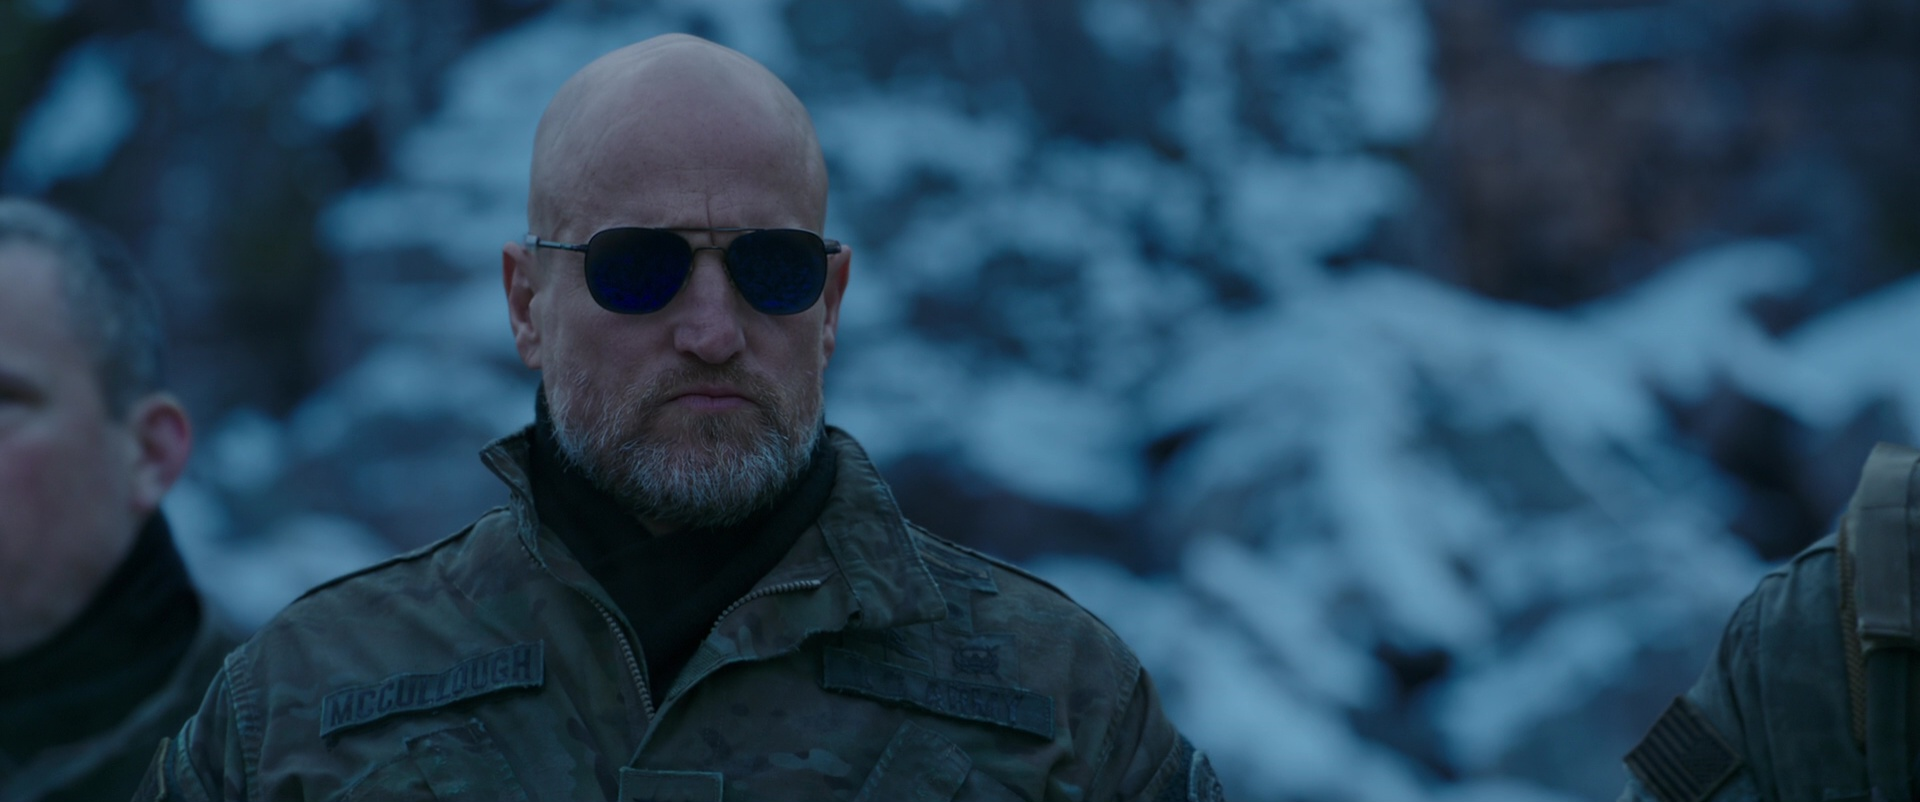 ba243af383 Randolph Engineering sunglasses worn by Woody Harrelson in War for the  Planet of the Apes (2017)